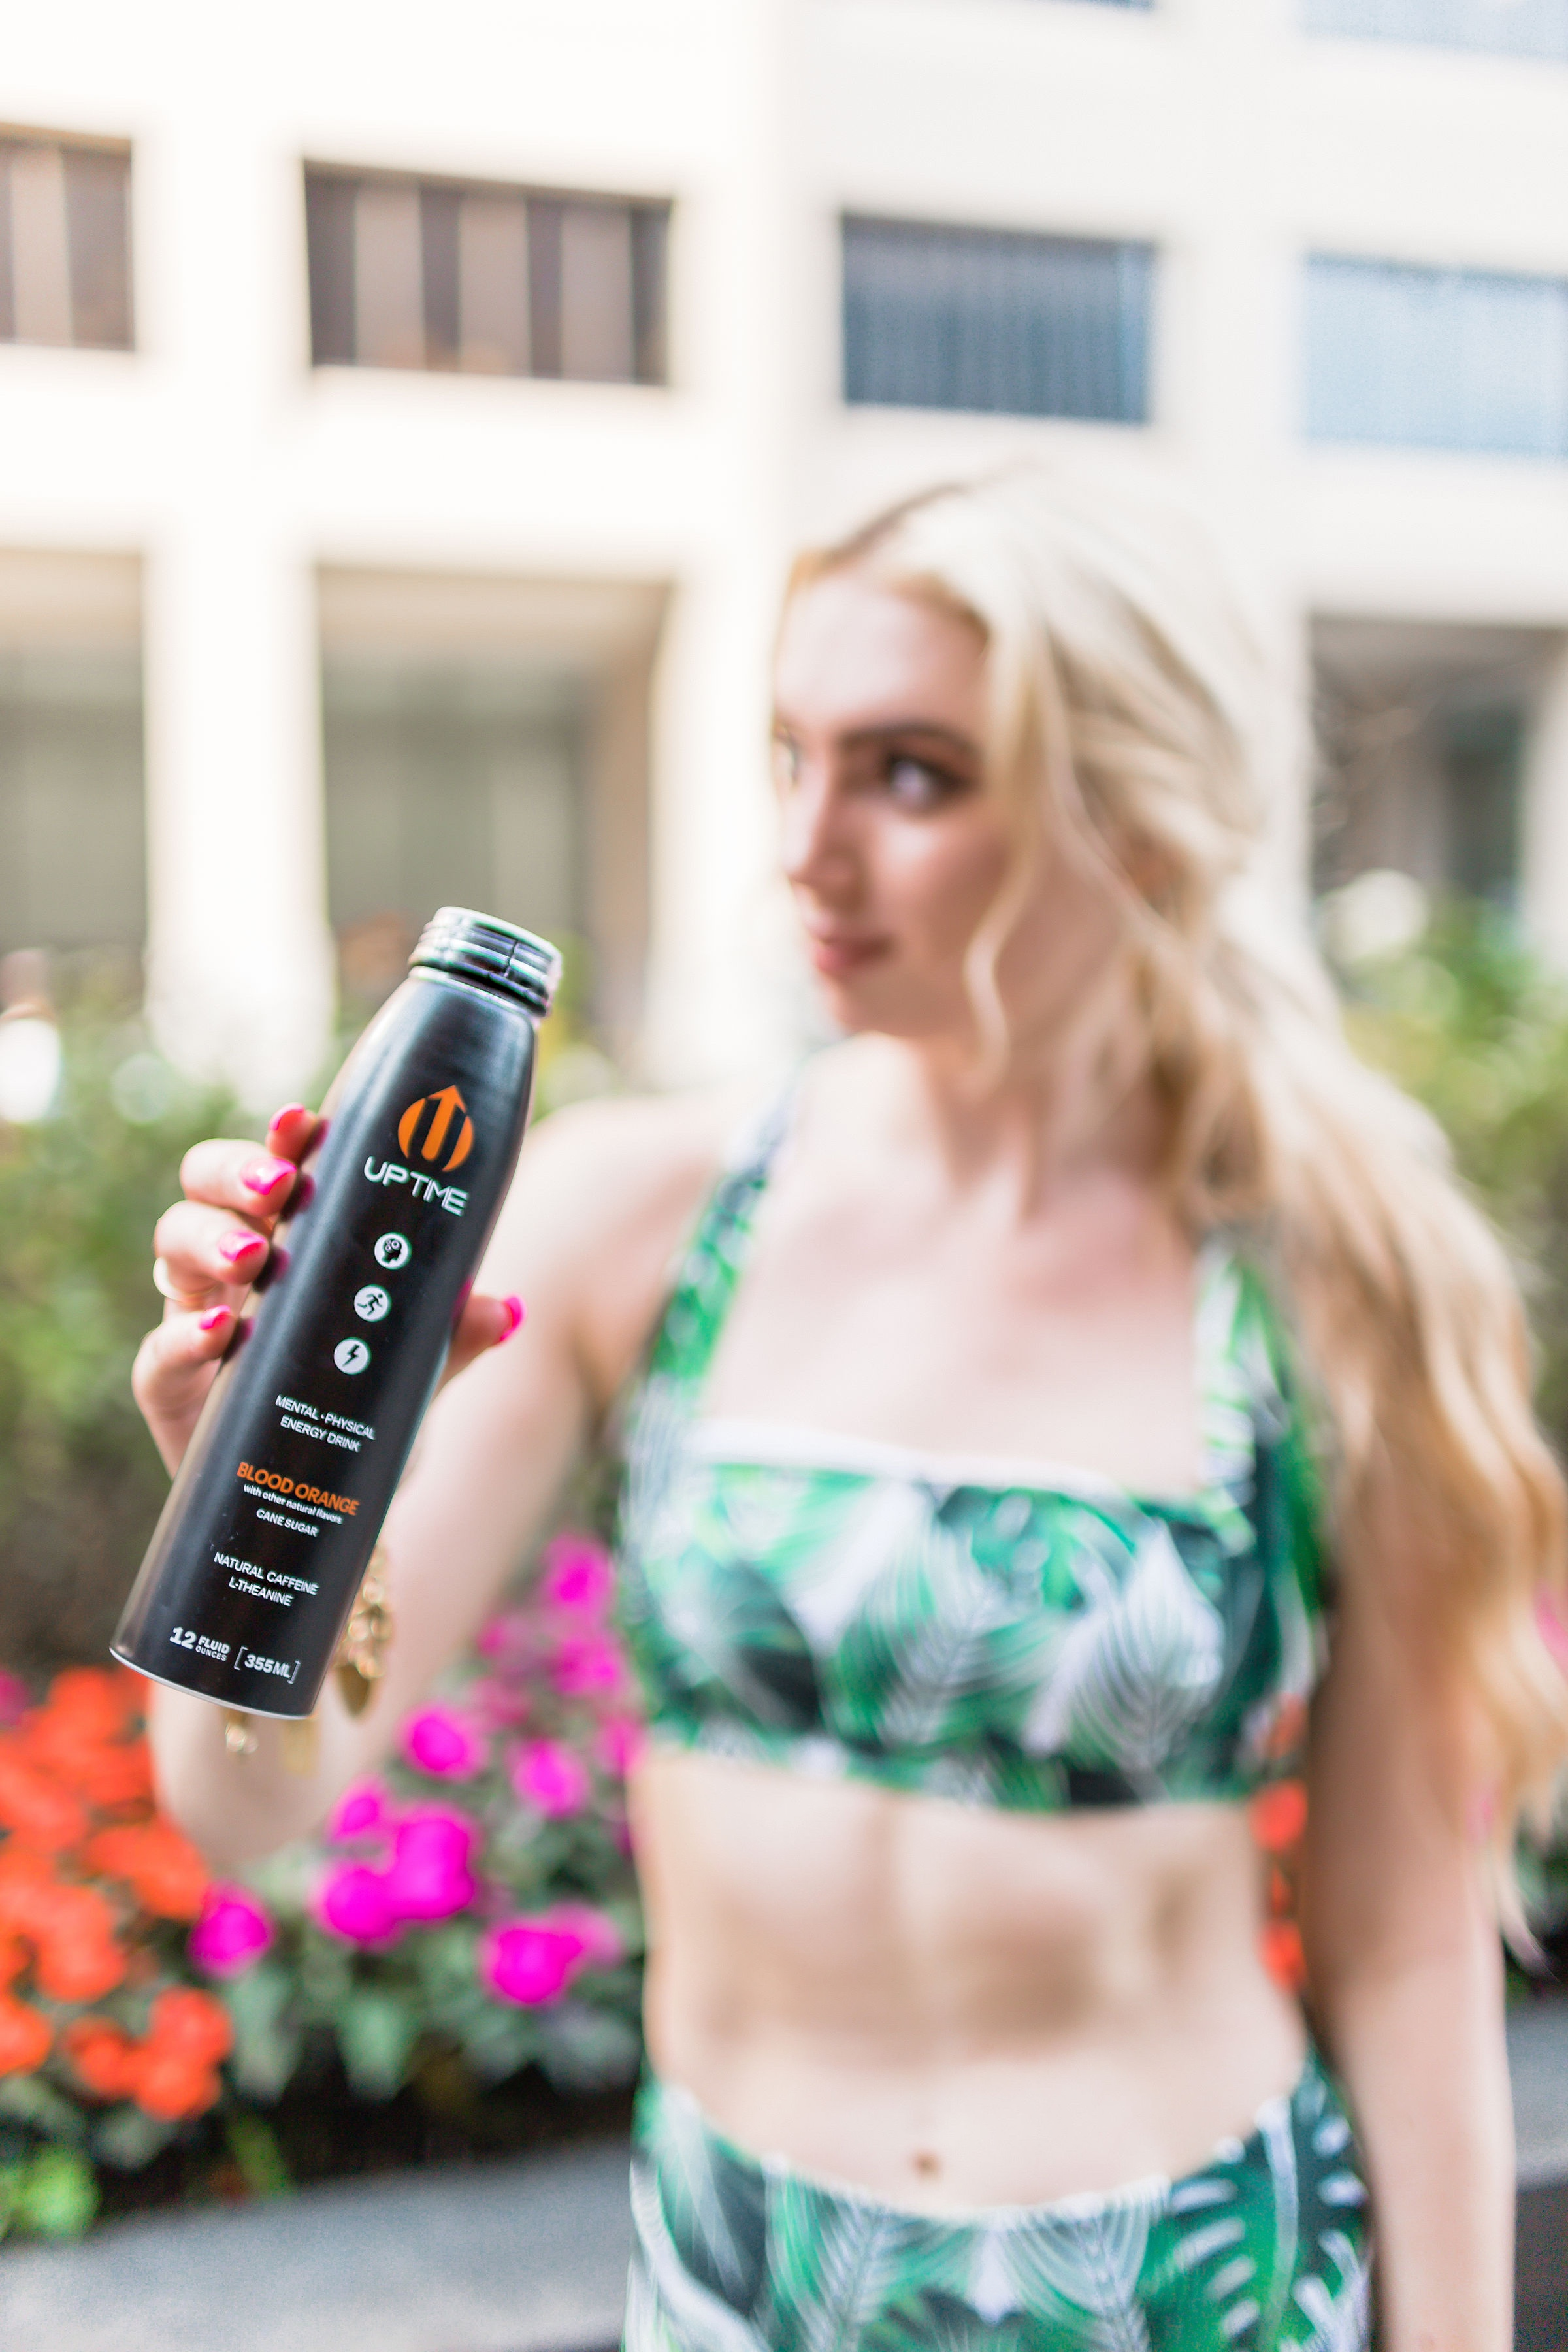 Fitness Energy Drinks | Every morning to Help With the Constant Alarm Clock in My Life | Tropical Workout Sets